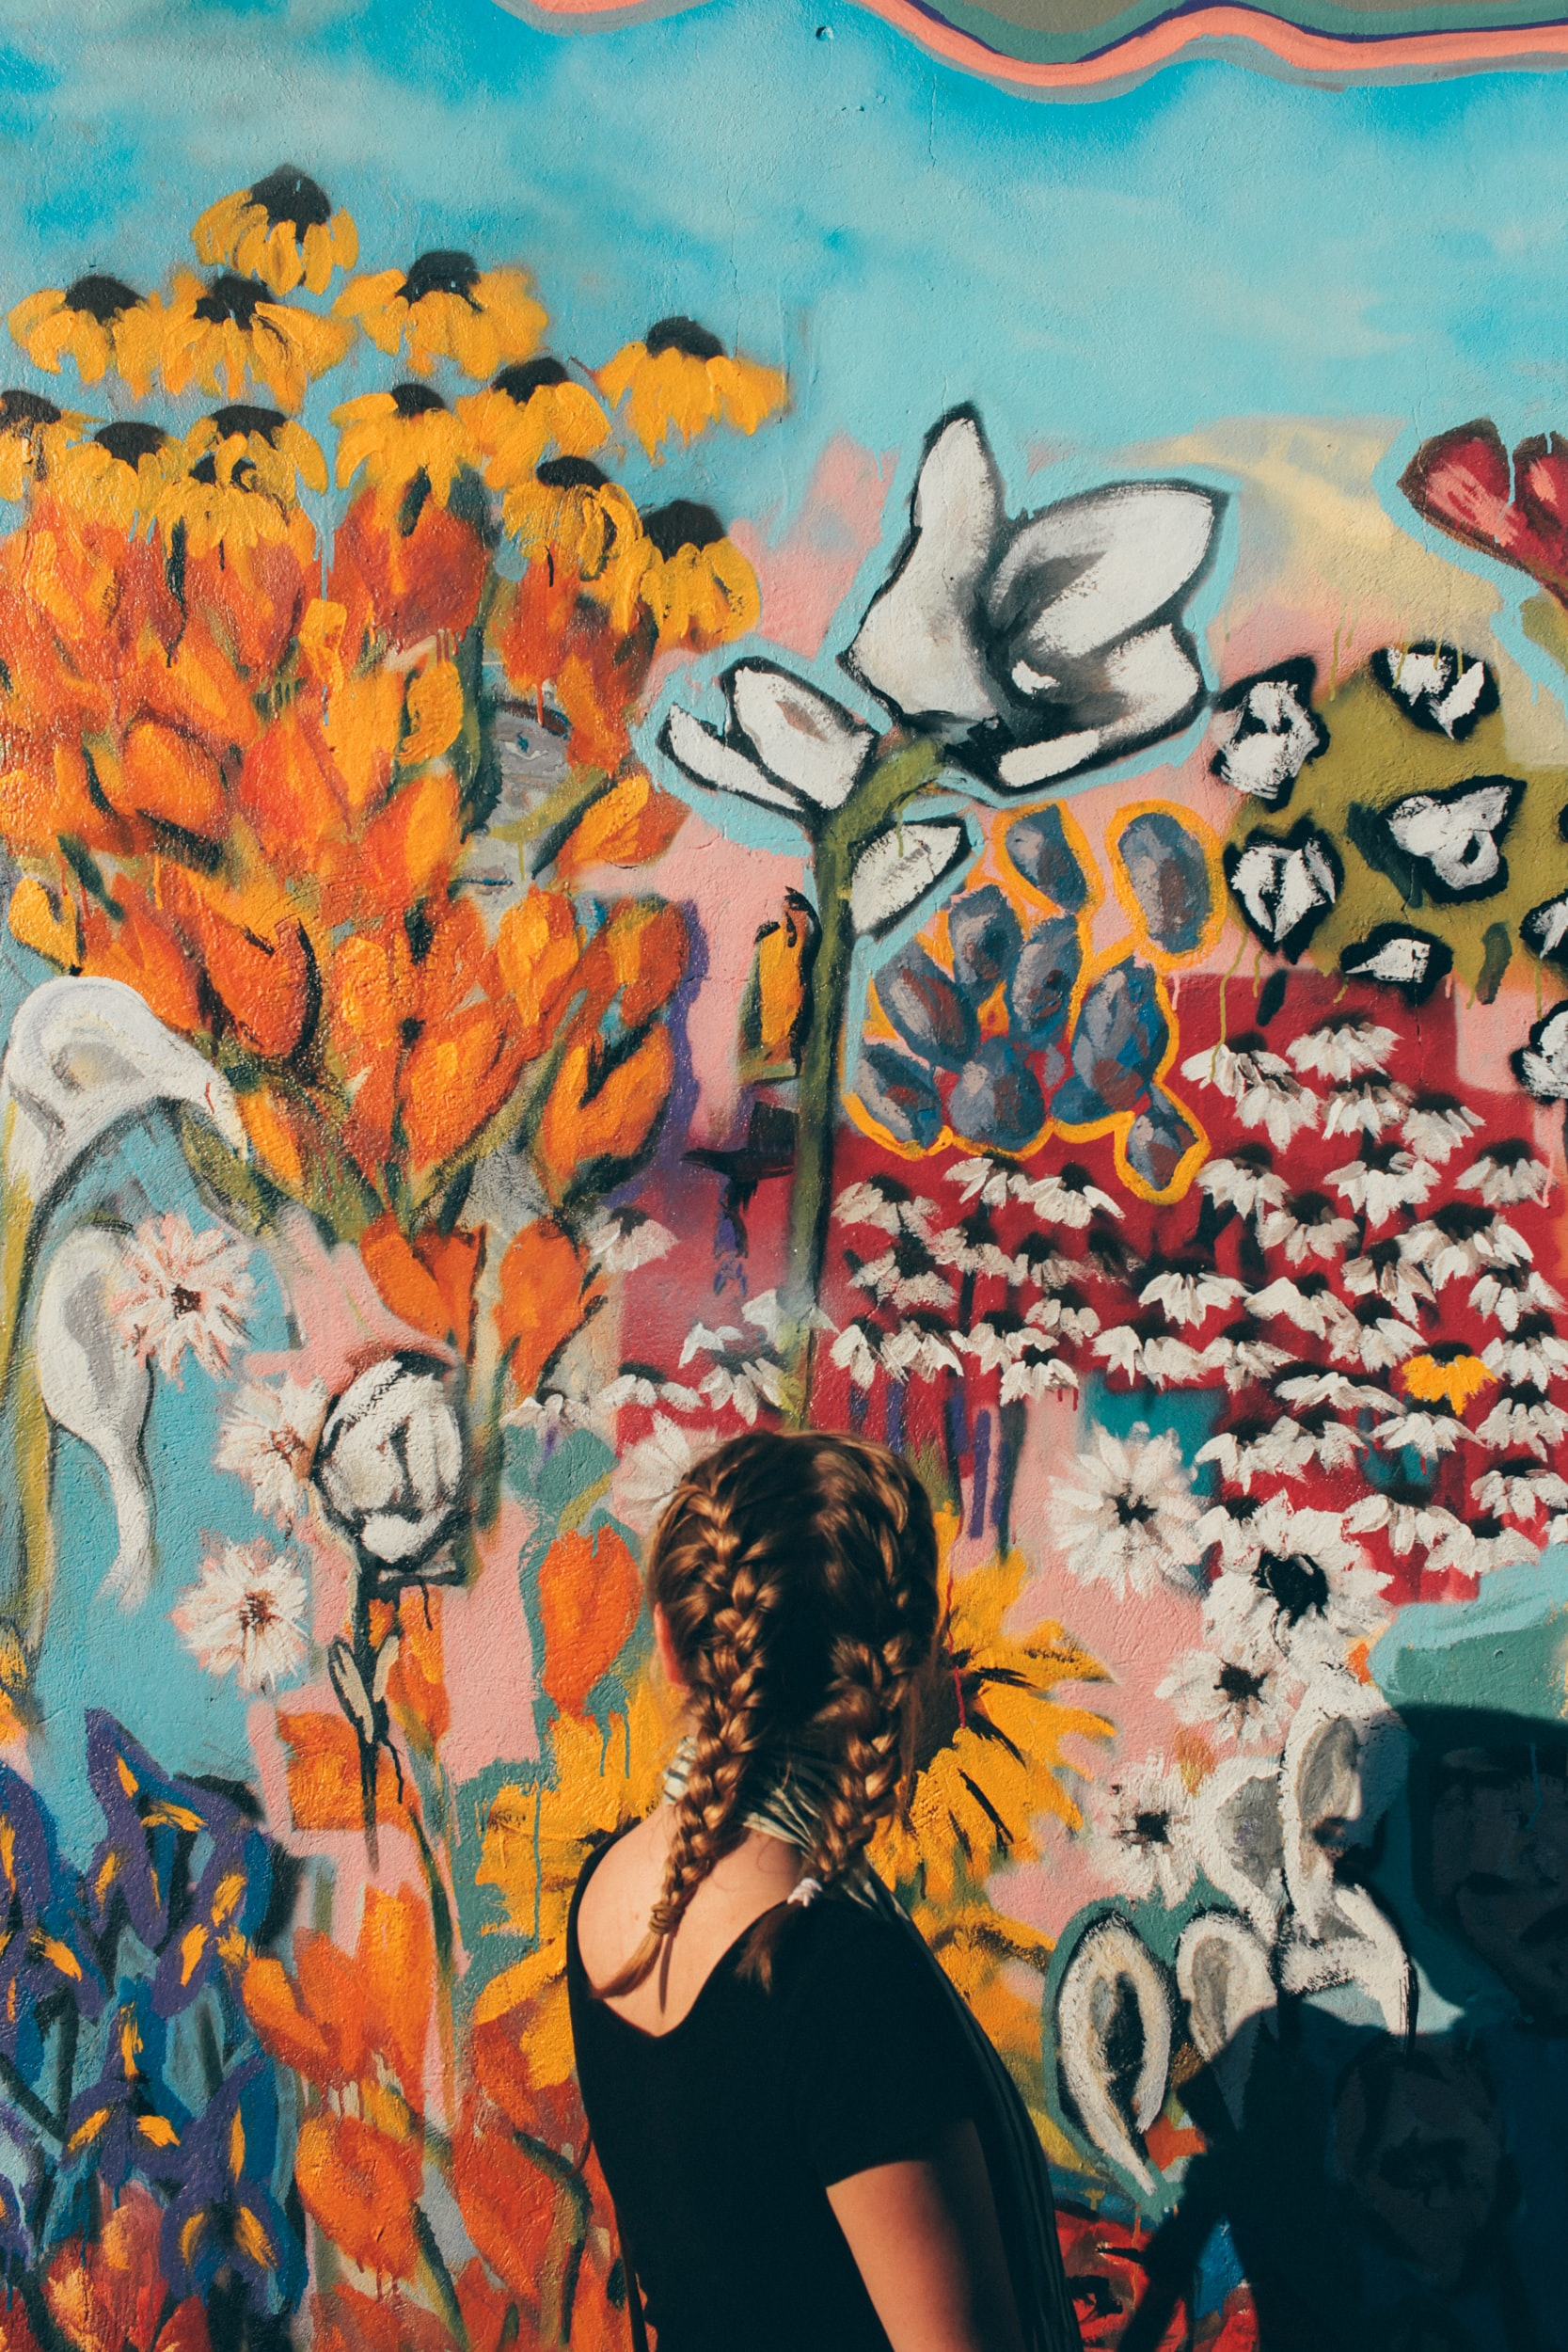 woman facing in front of floral graffiti wall